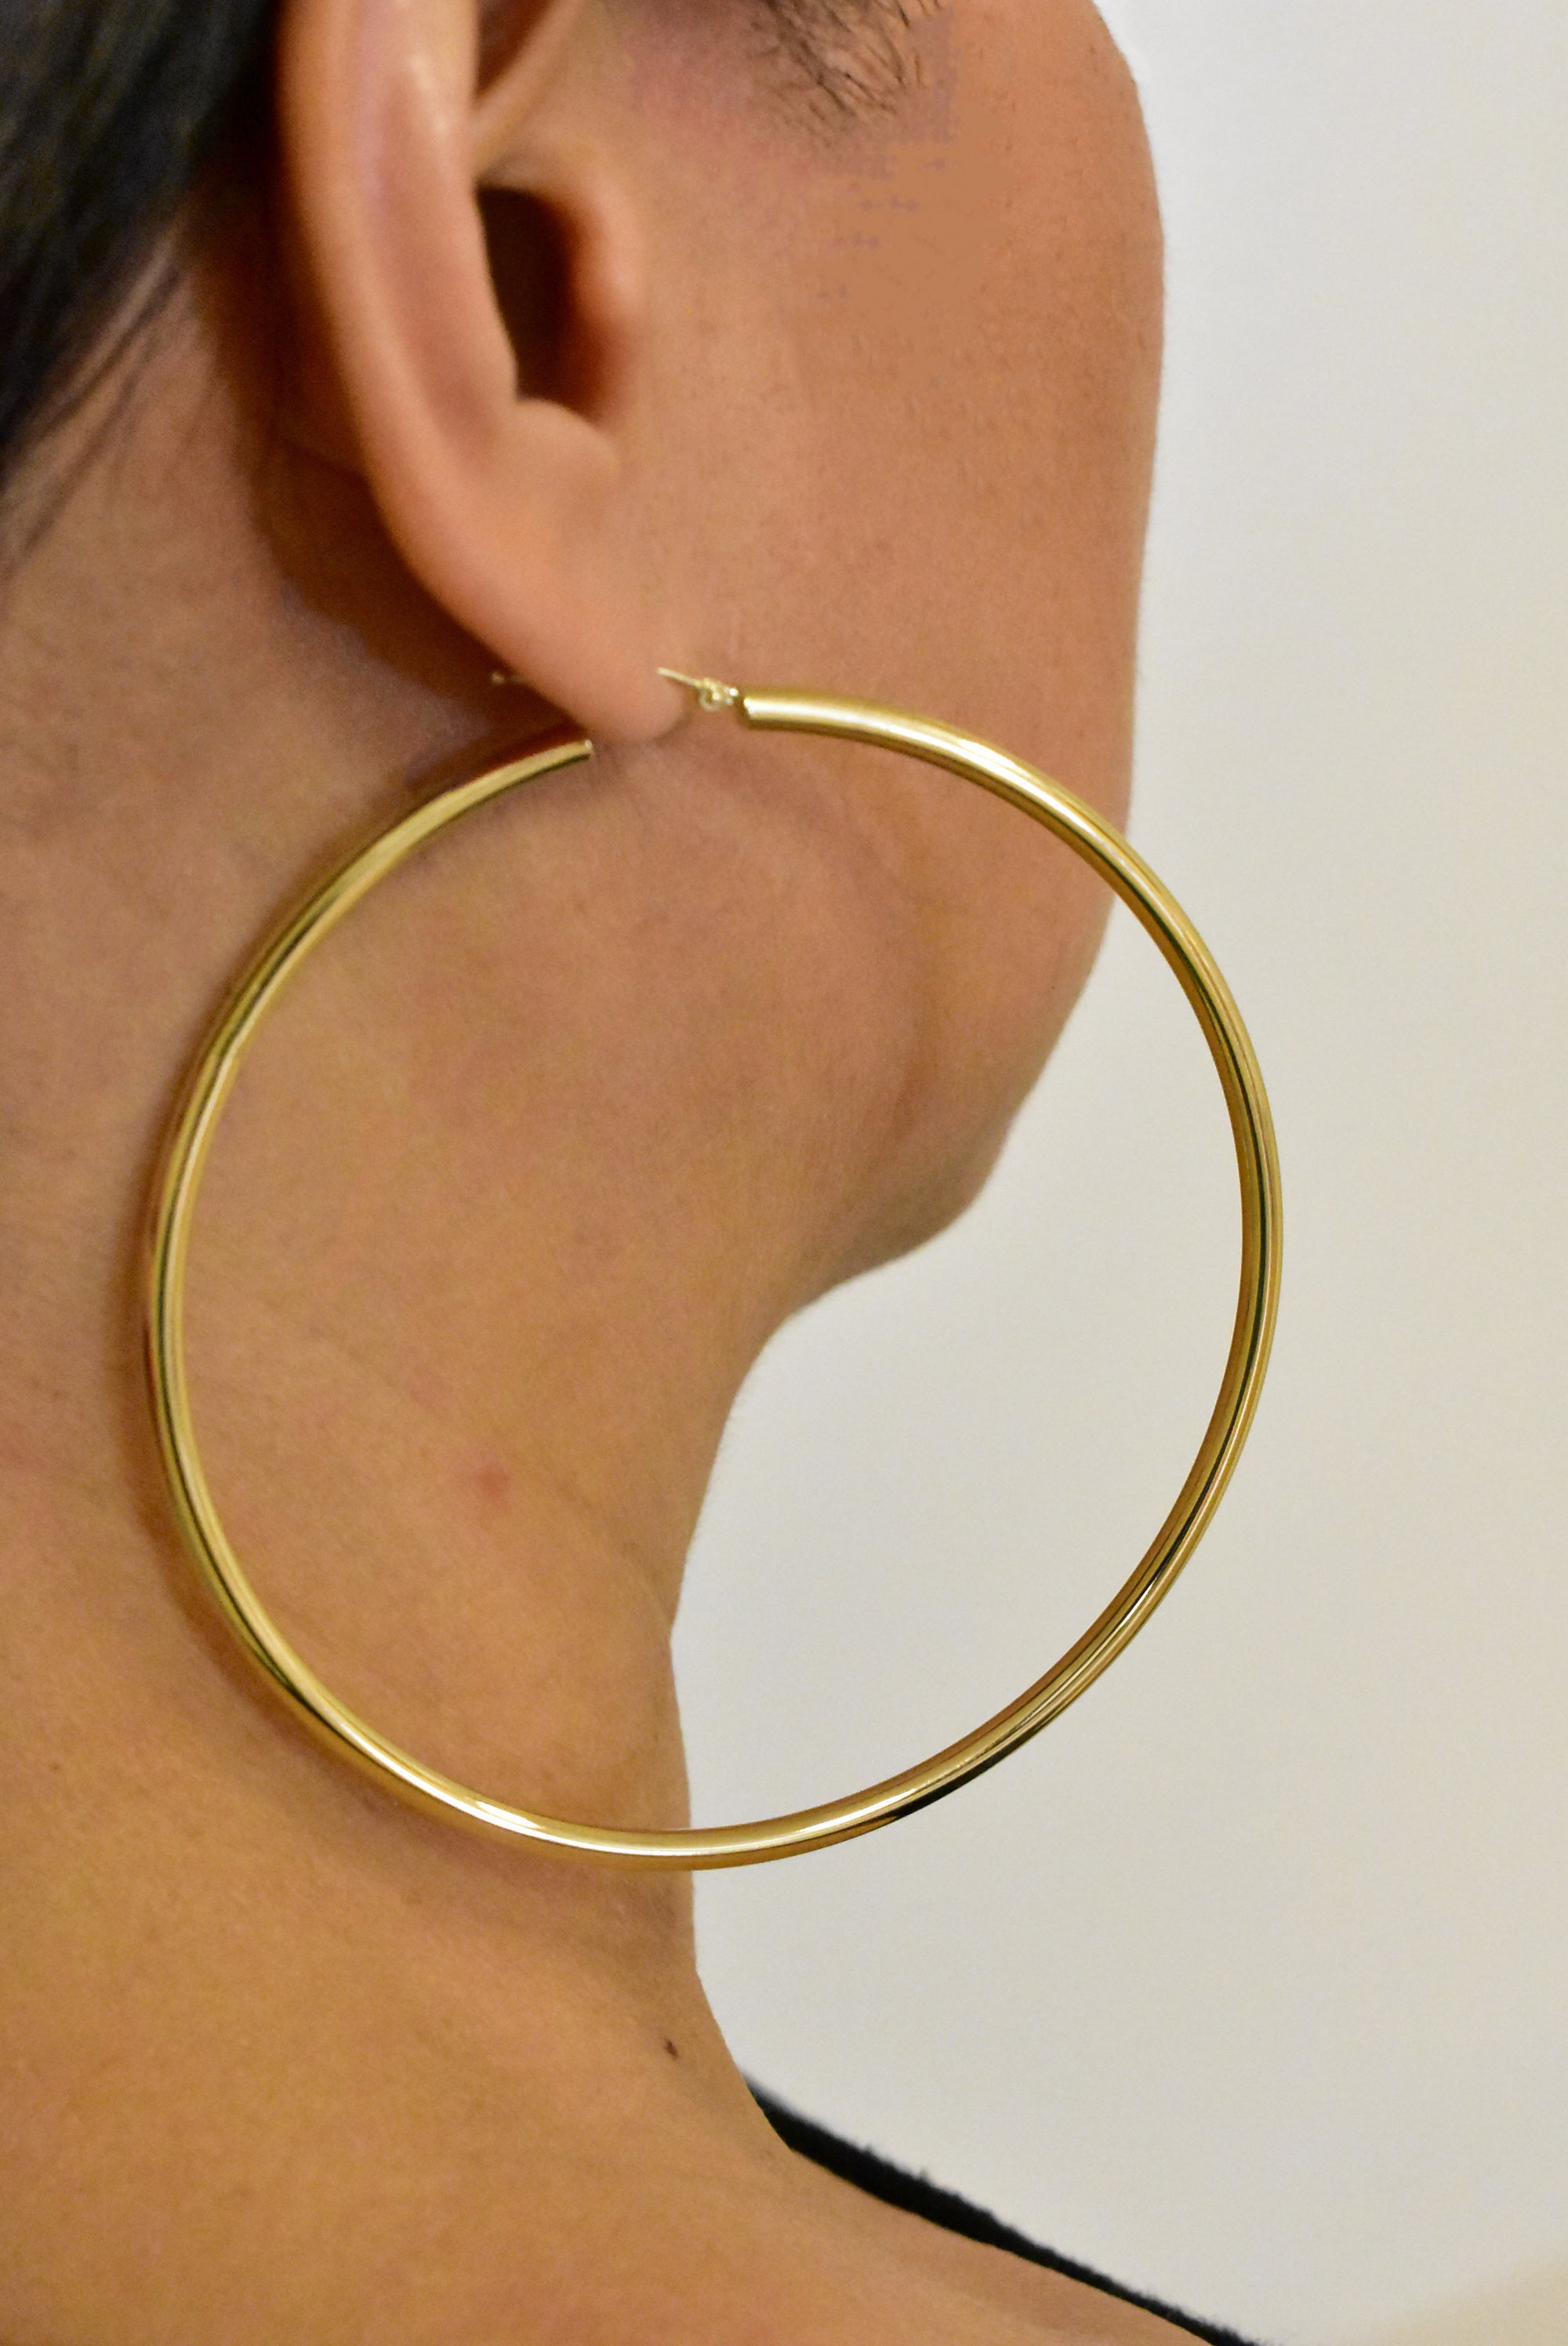 14K Yellow Gold 3 inch Diameter Extra Large Giant Gigantic Round Classic Hoop Earrings Lightweight 78mm x 3mm